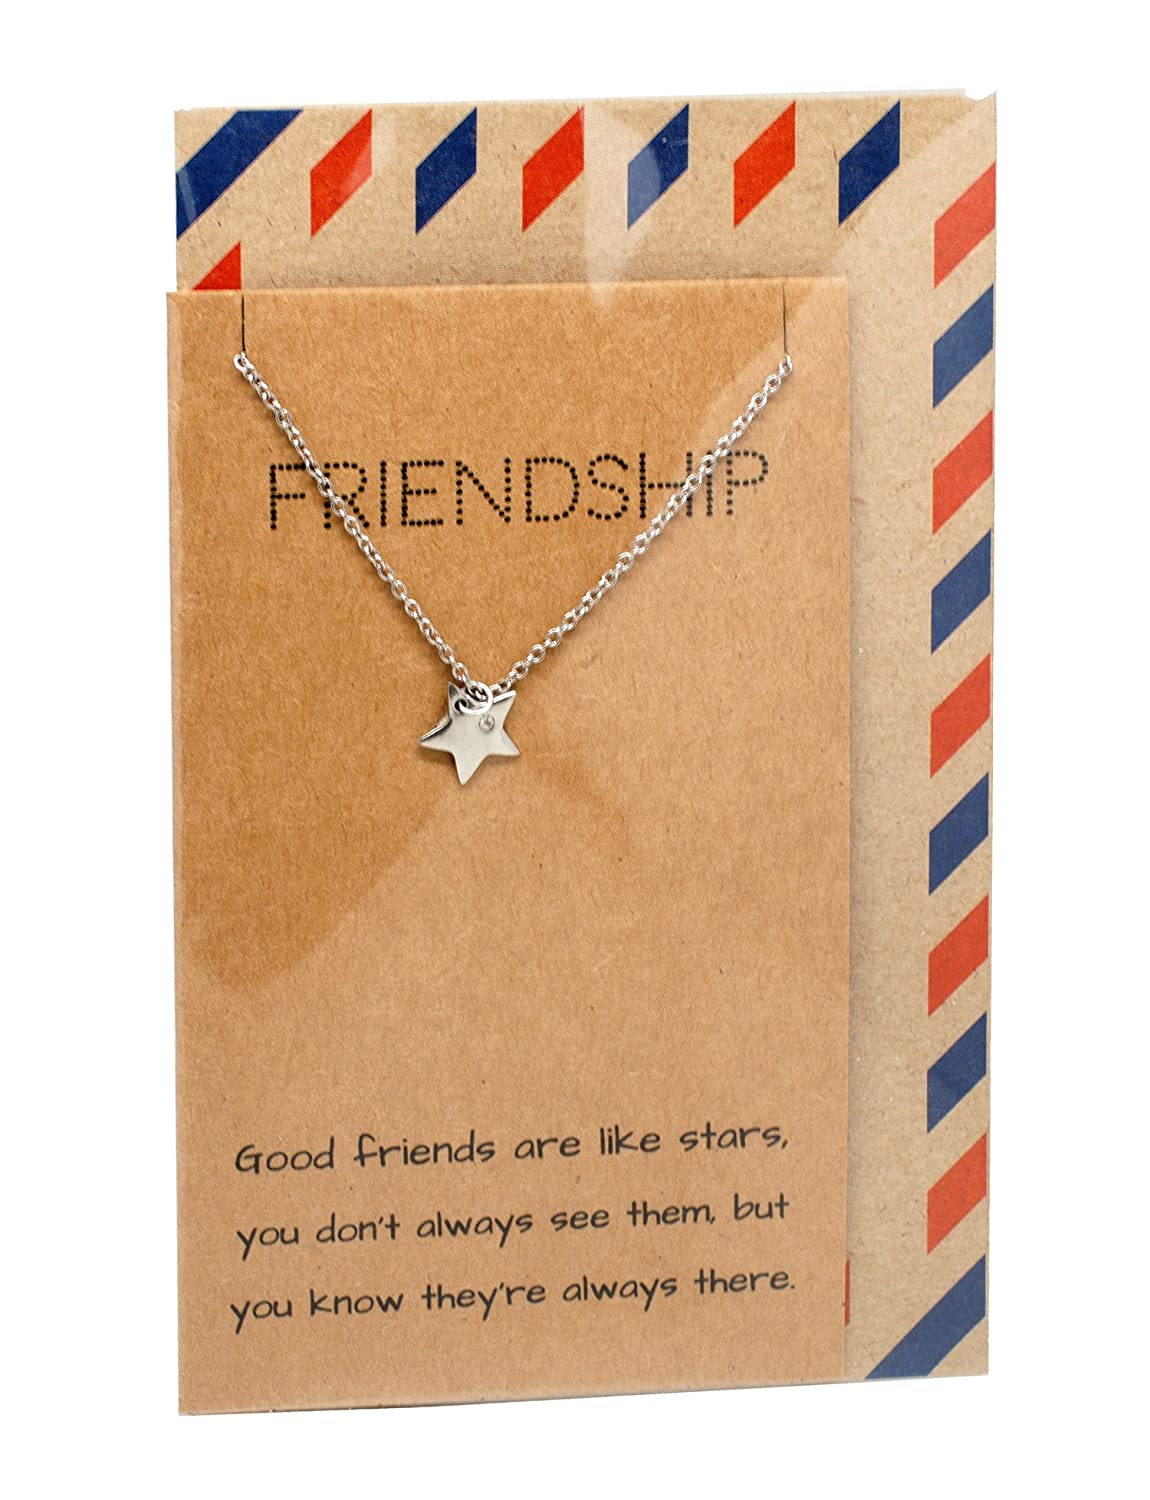 Quan Jewelry Star Pendant Necklace Gifts For Best Friends Teens Girls Bff Friendship Necklace Presentable Thank You Birthday Greeting Card